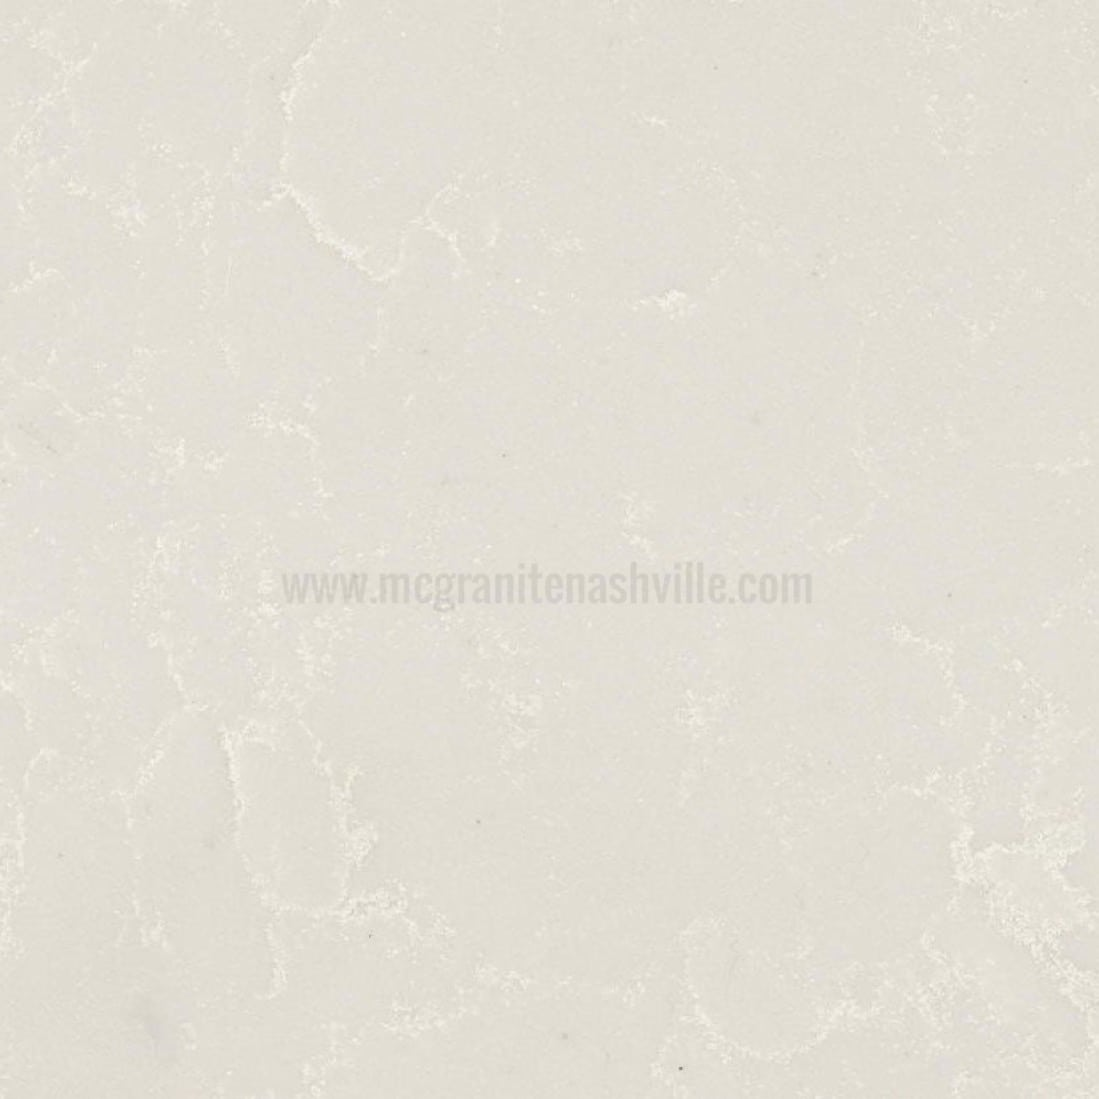 Perla White Quartz